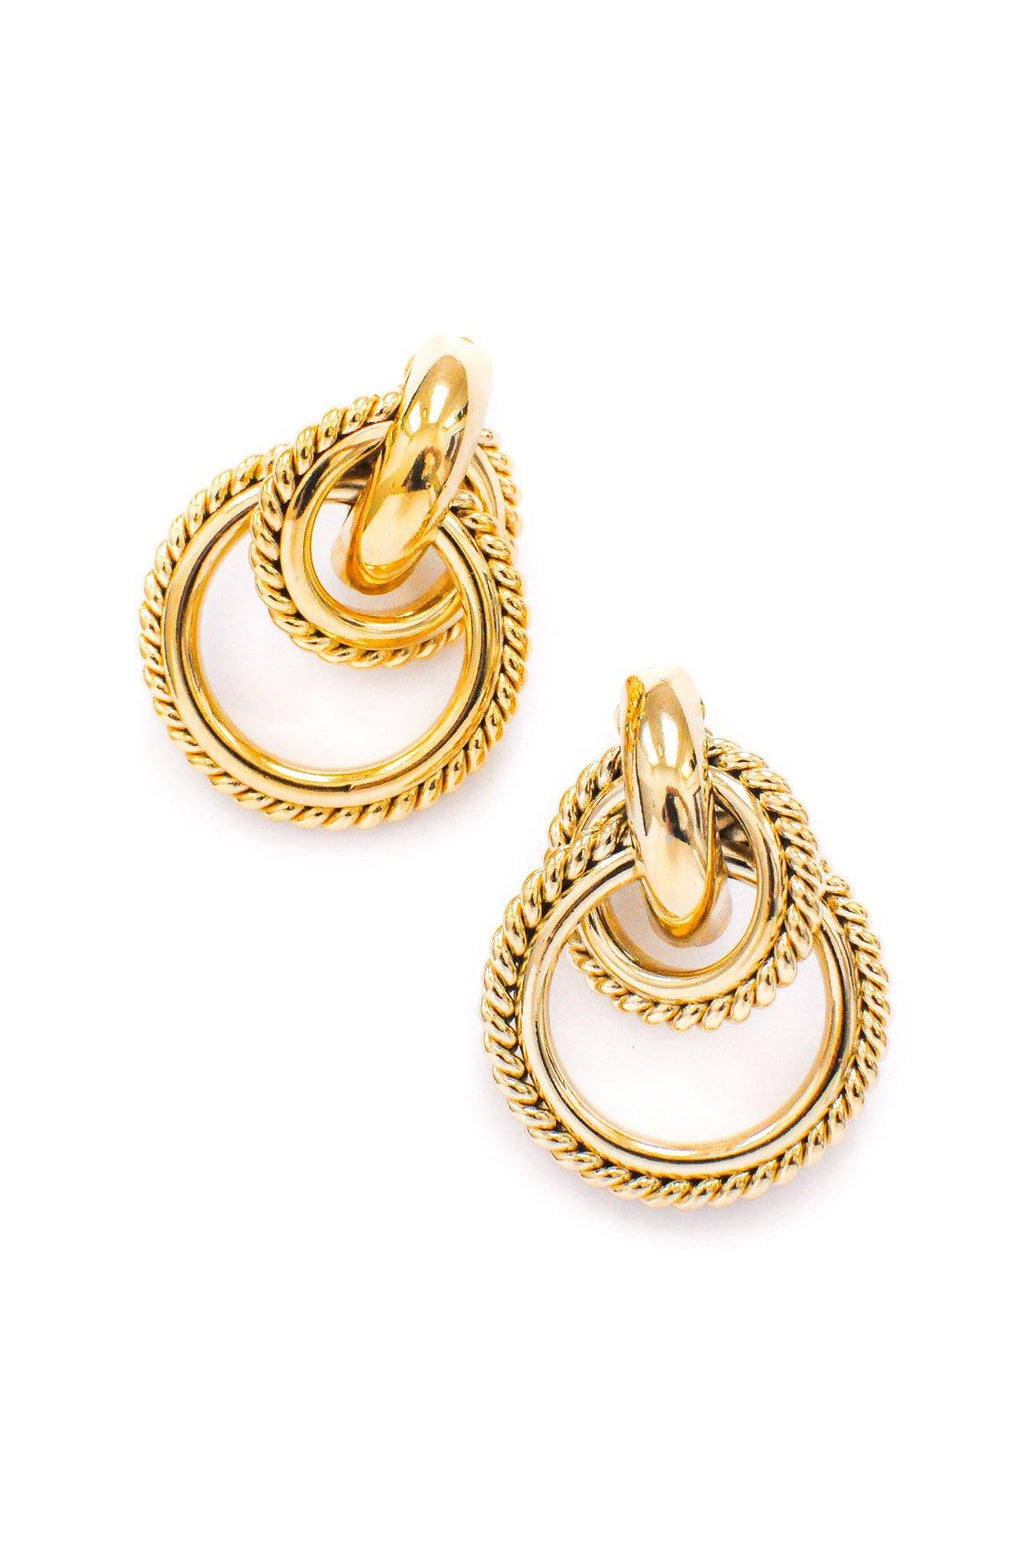 Givenchy Statement Hoop Clip-on Earrings